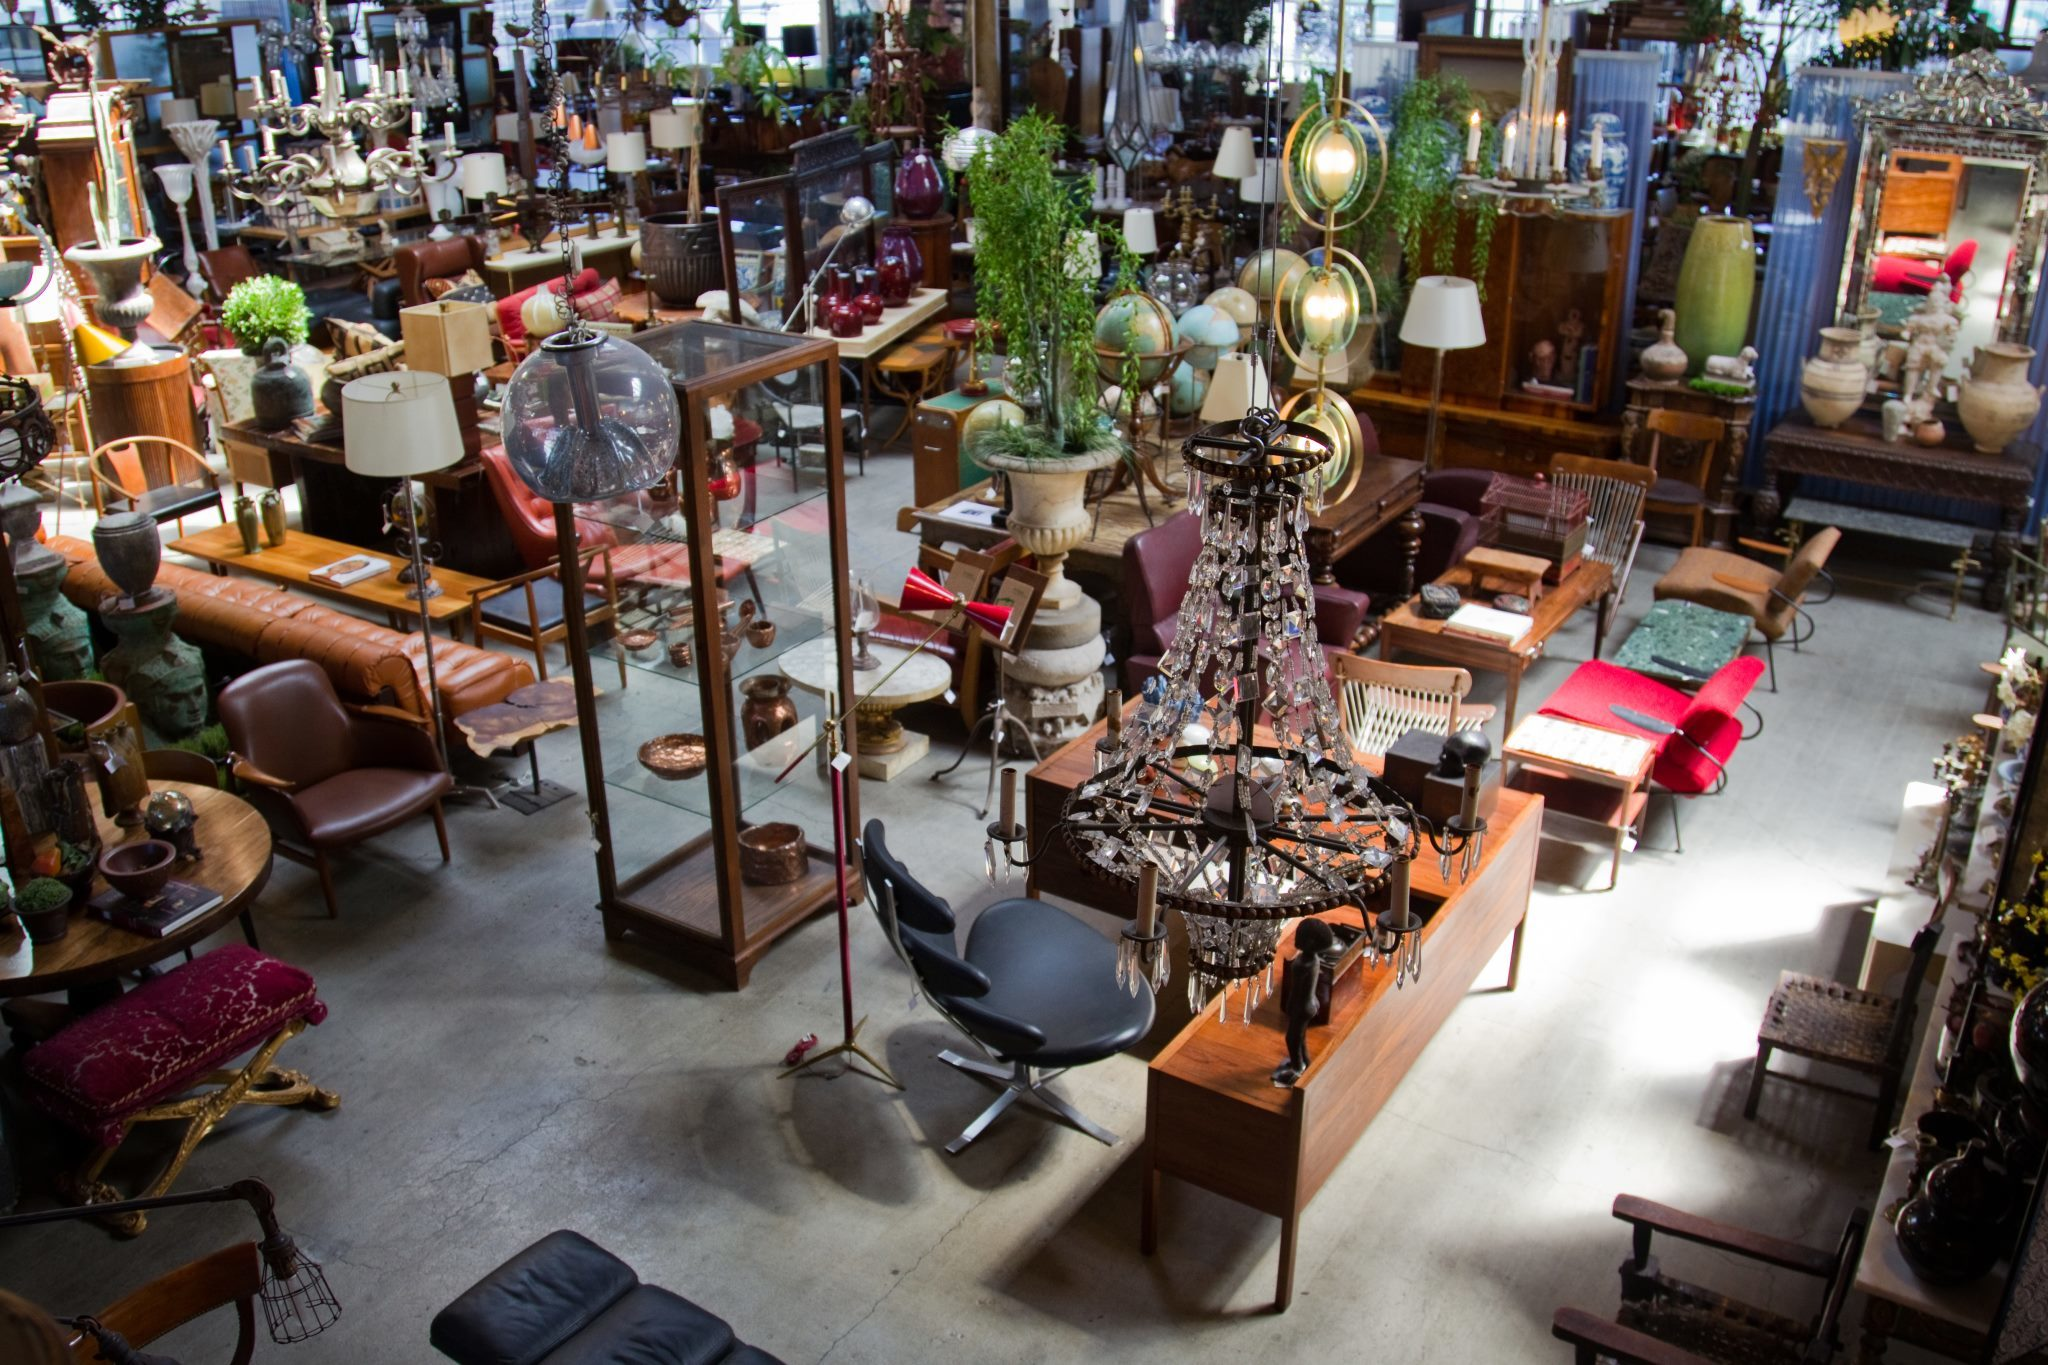 JF Chen Antiques. Best antique stores in Los Angeles for hidden gems